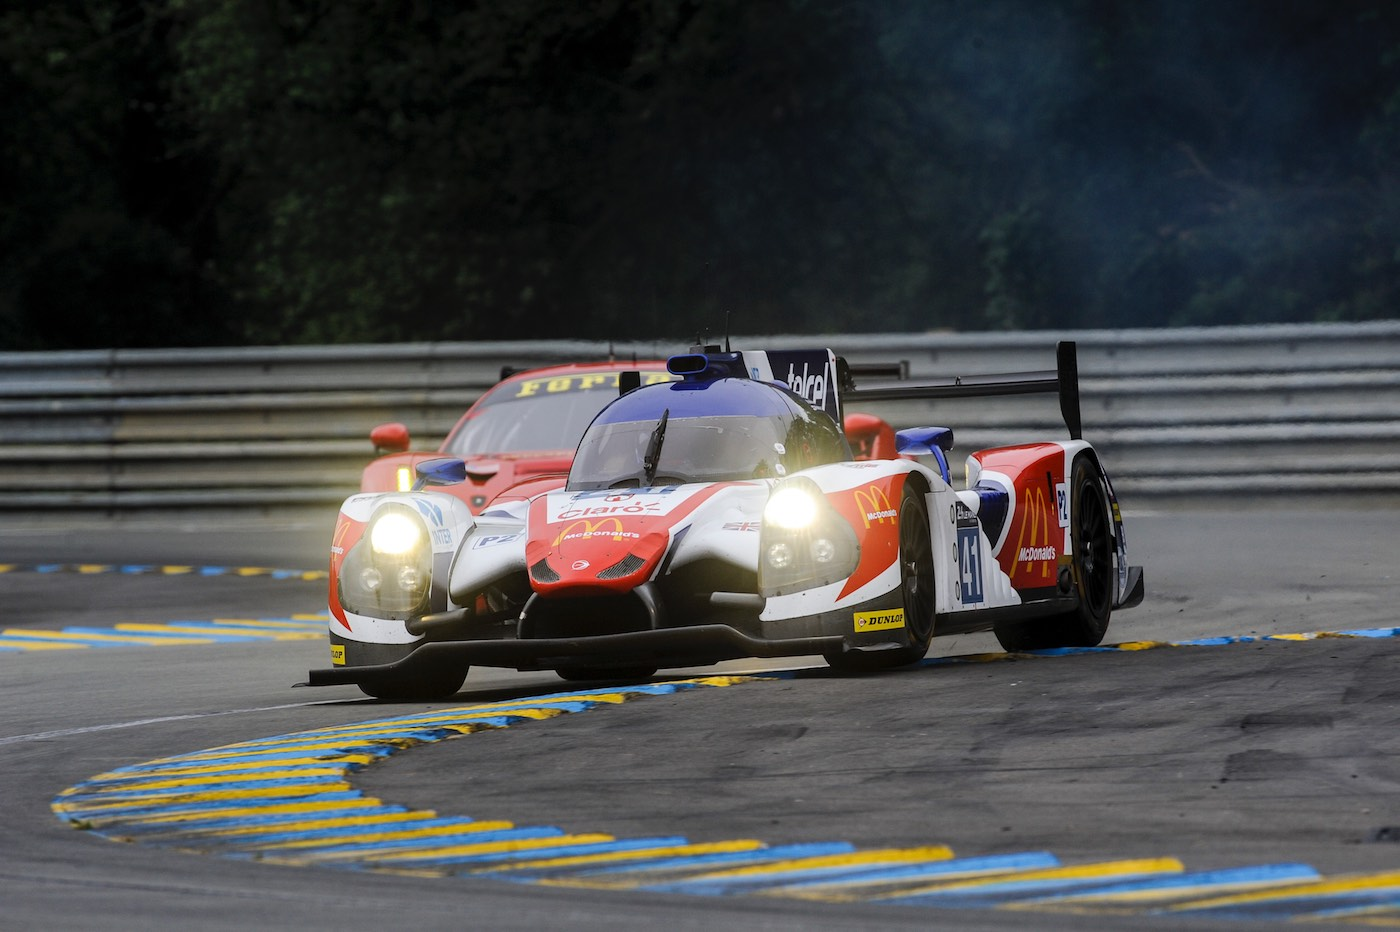 Successful test day at Le Mans